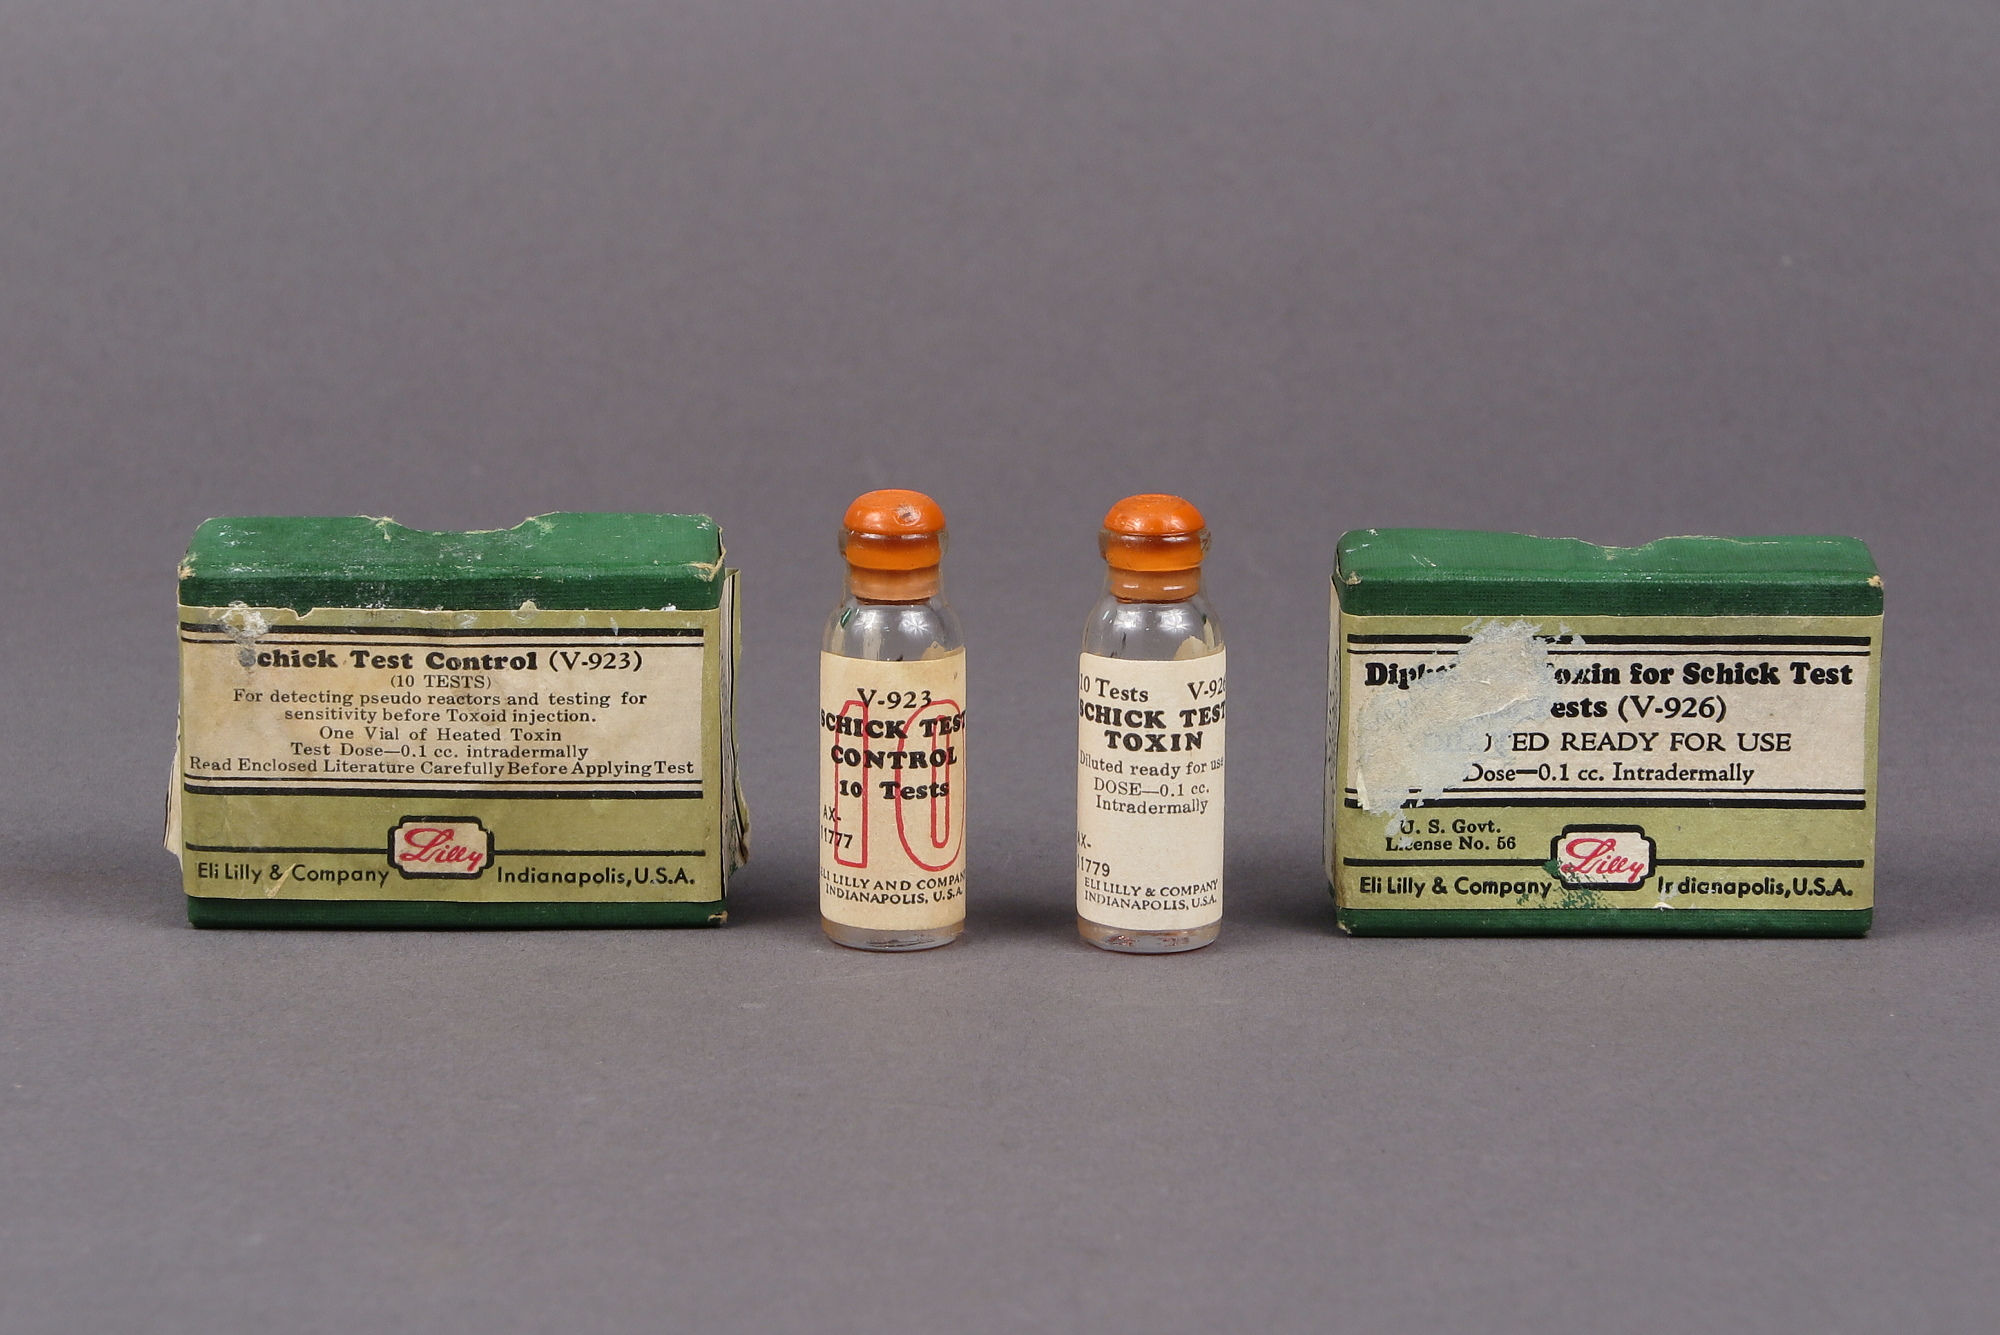 Diphtheria Toxin for Schick Test and Schick Test Control